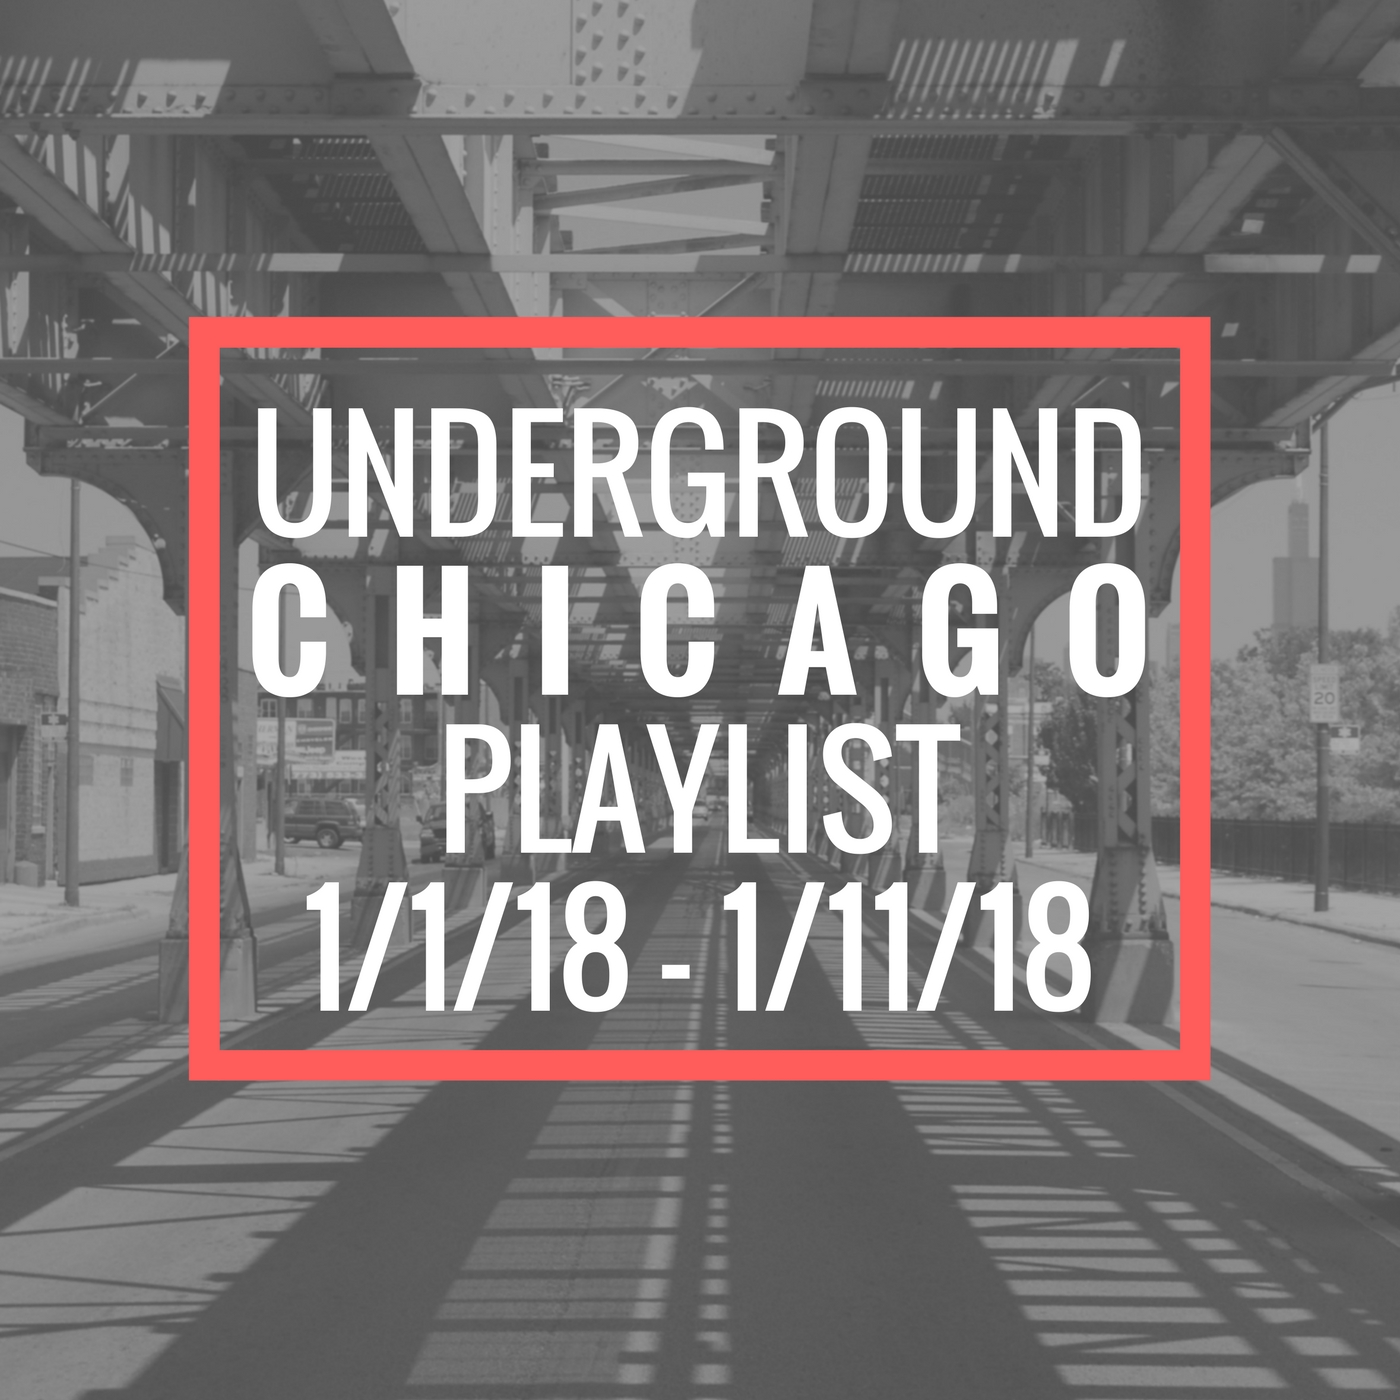 Underground Chicago Hip Hop Playlist: 1/1/18-1/11/18